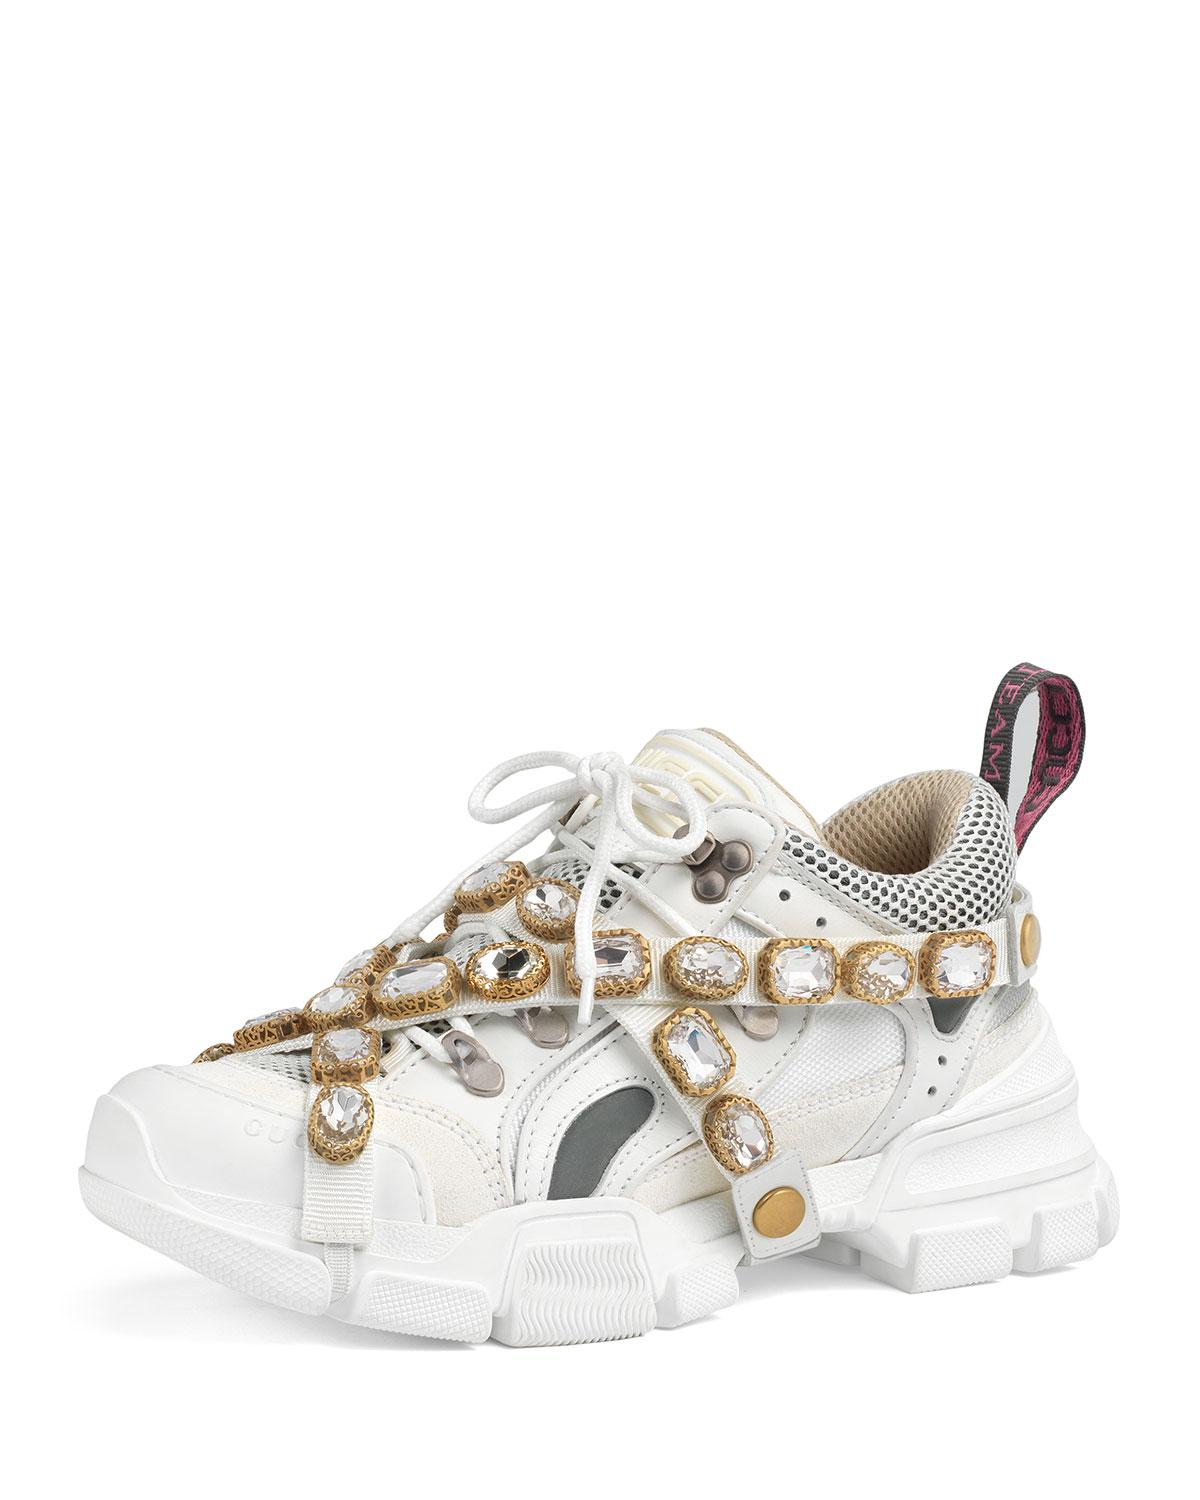 55a3743d2cd Lyst - Gucci White Crystal Flashtrek Sneakers in White - Save 40%